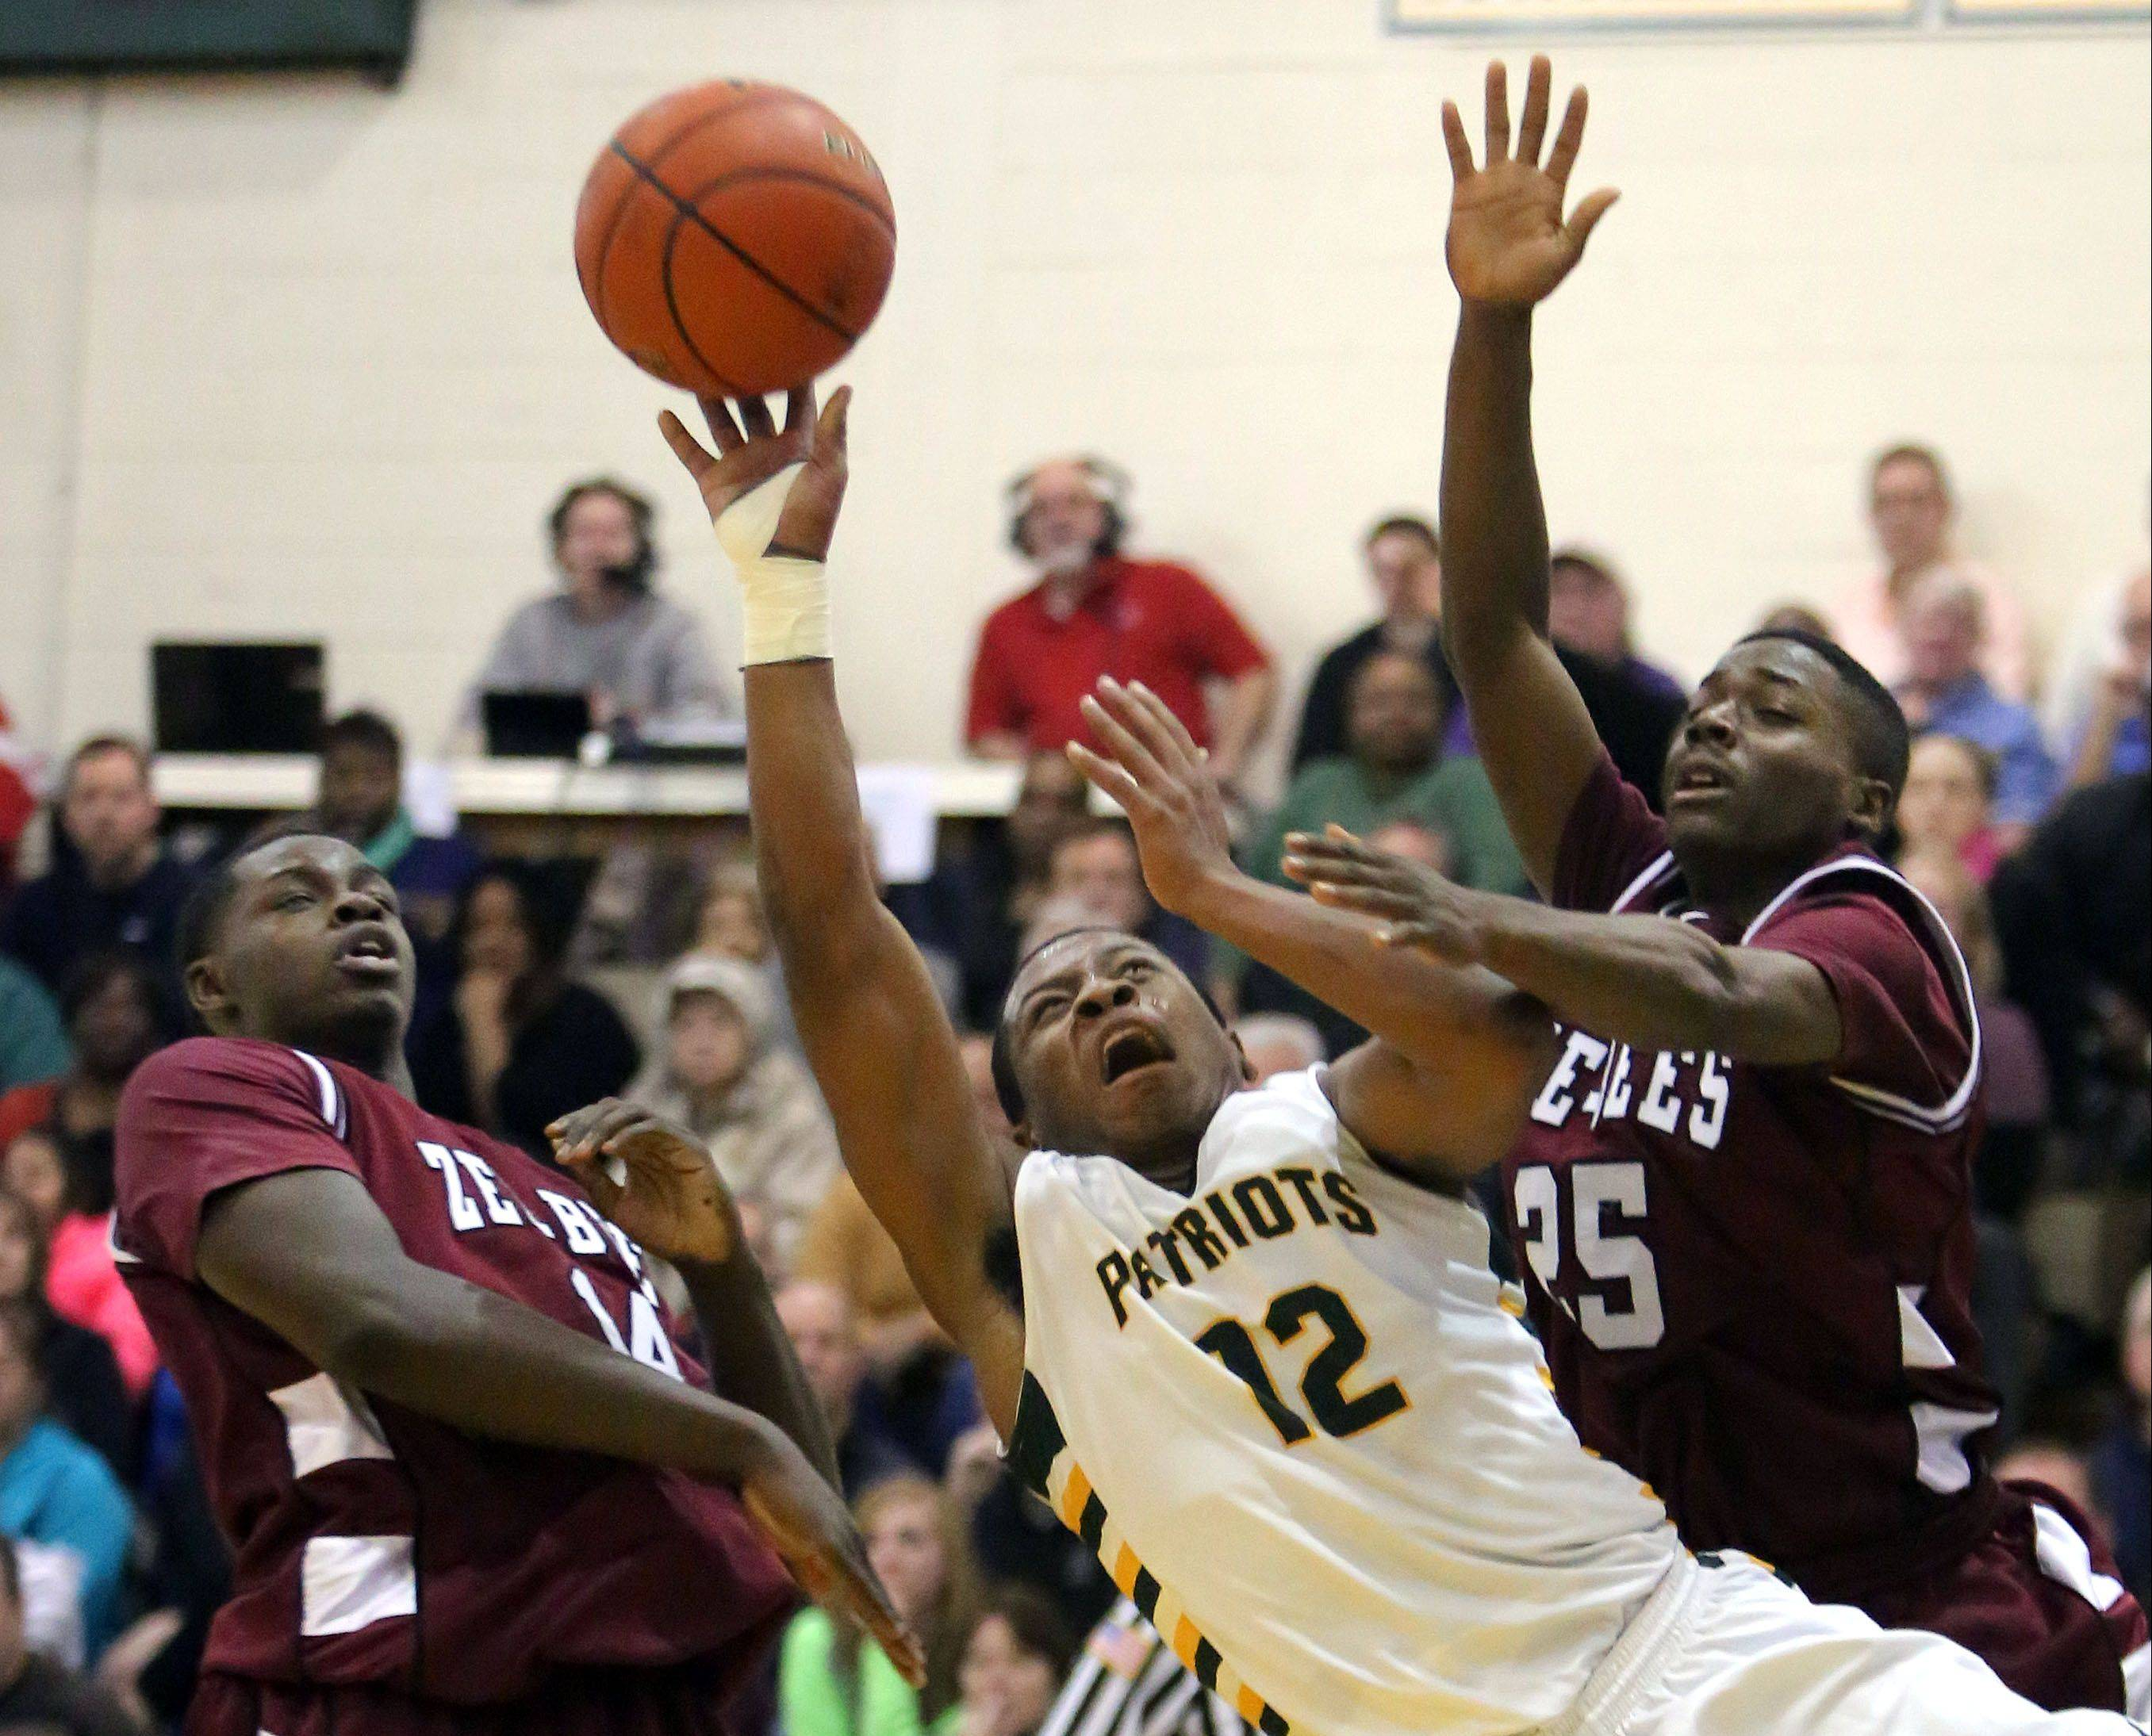 Stevenson�s Matt Johnson splits Zion-Benton�s Milik Yarbrough, left, and Fred Calvert during NSC Lake play Friday night at Stevenson.